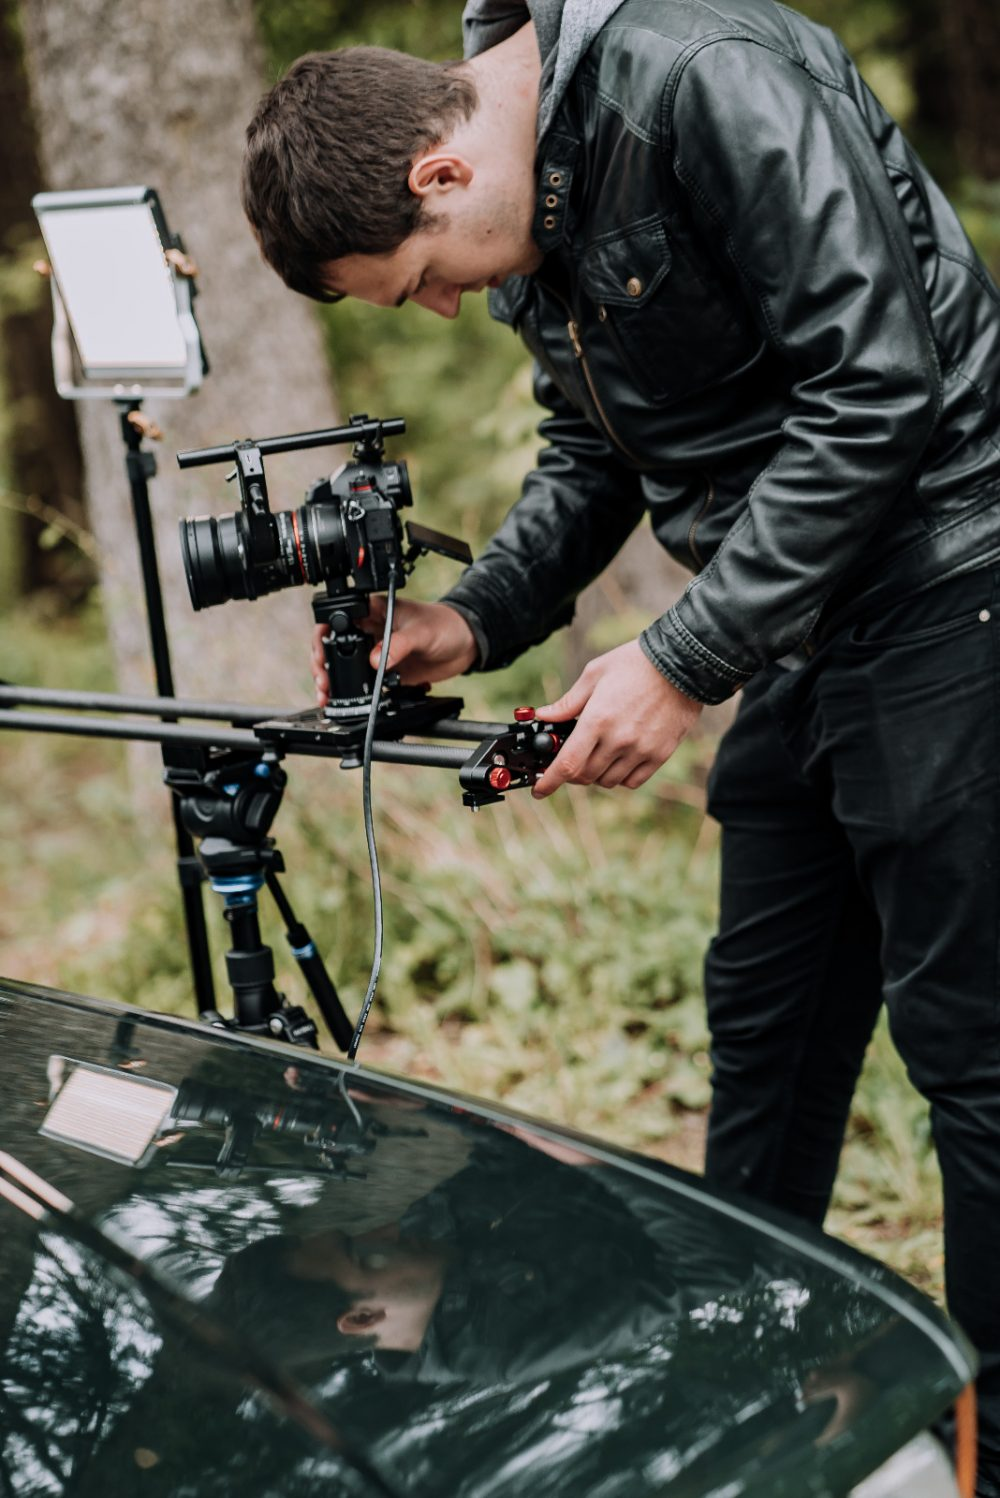 Roland Klocker - Behind the Scenes on Set with Camera and Slider